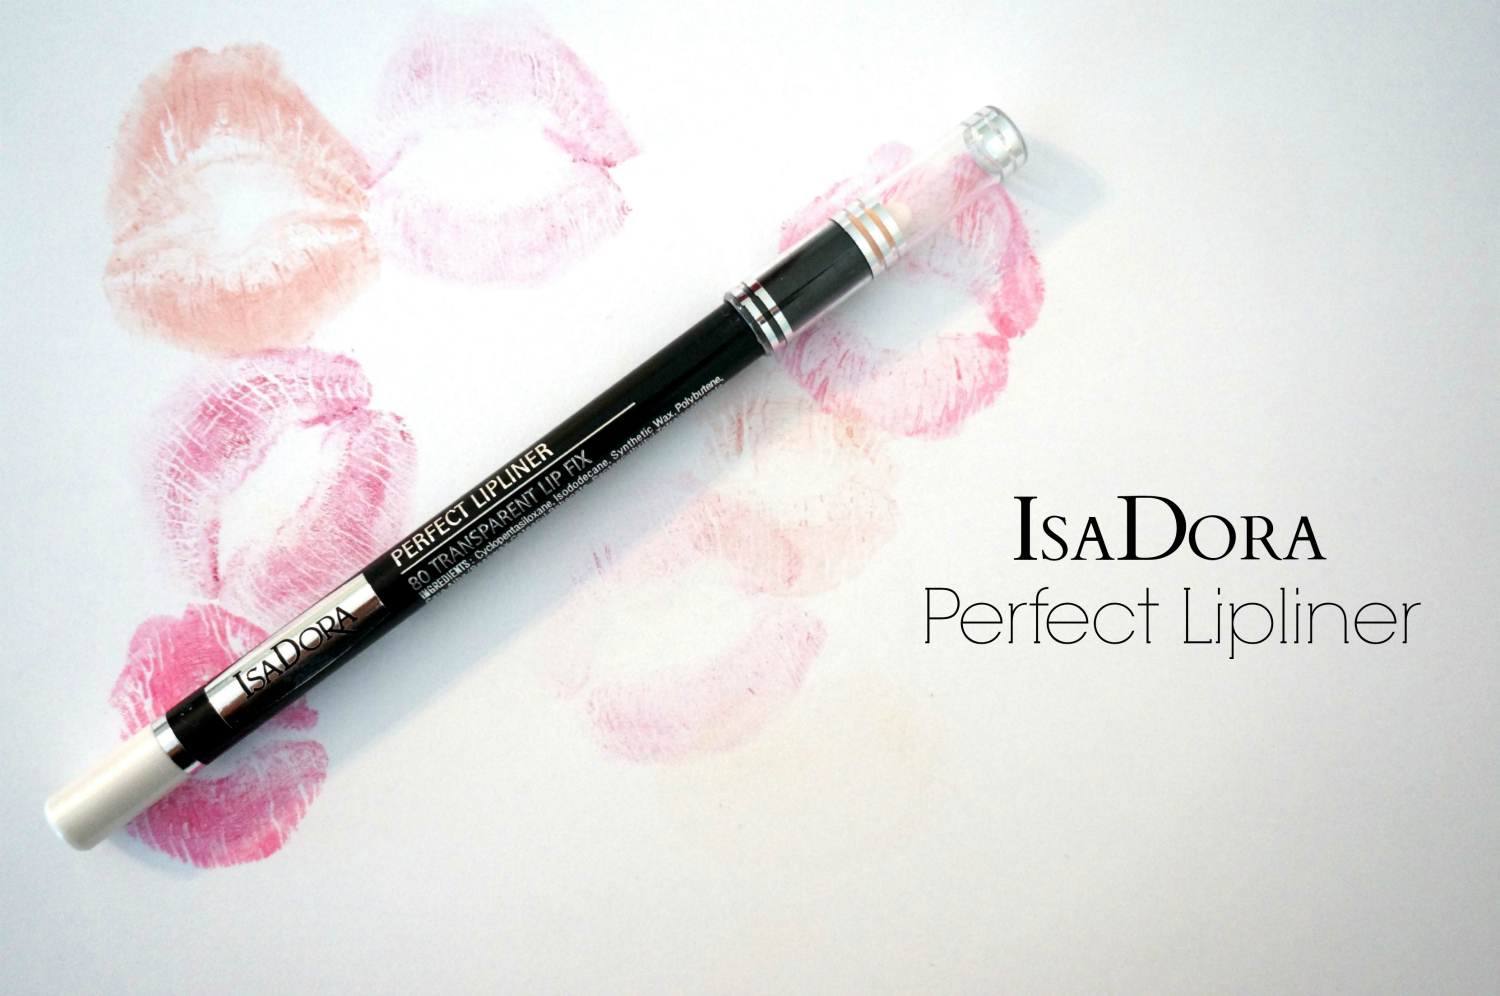 IsaDora perfect lipliner in 80 transparent